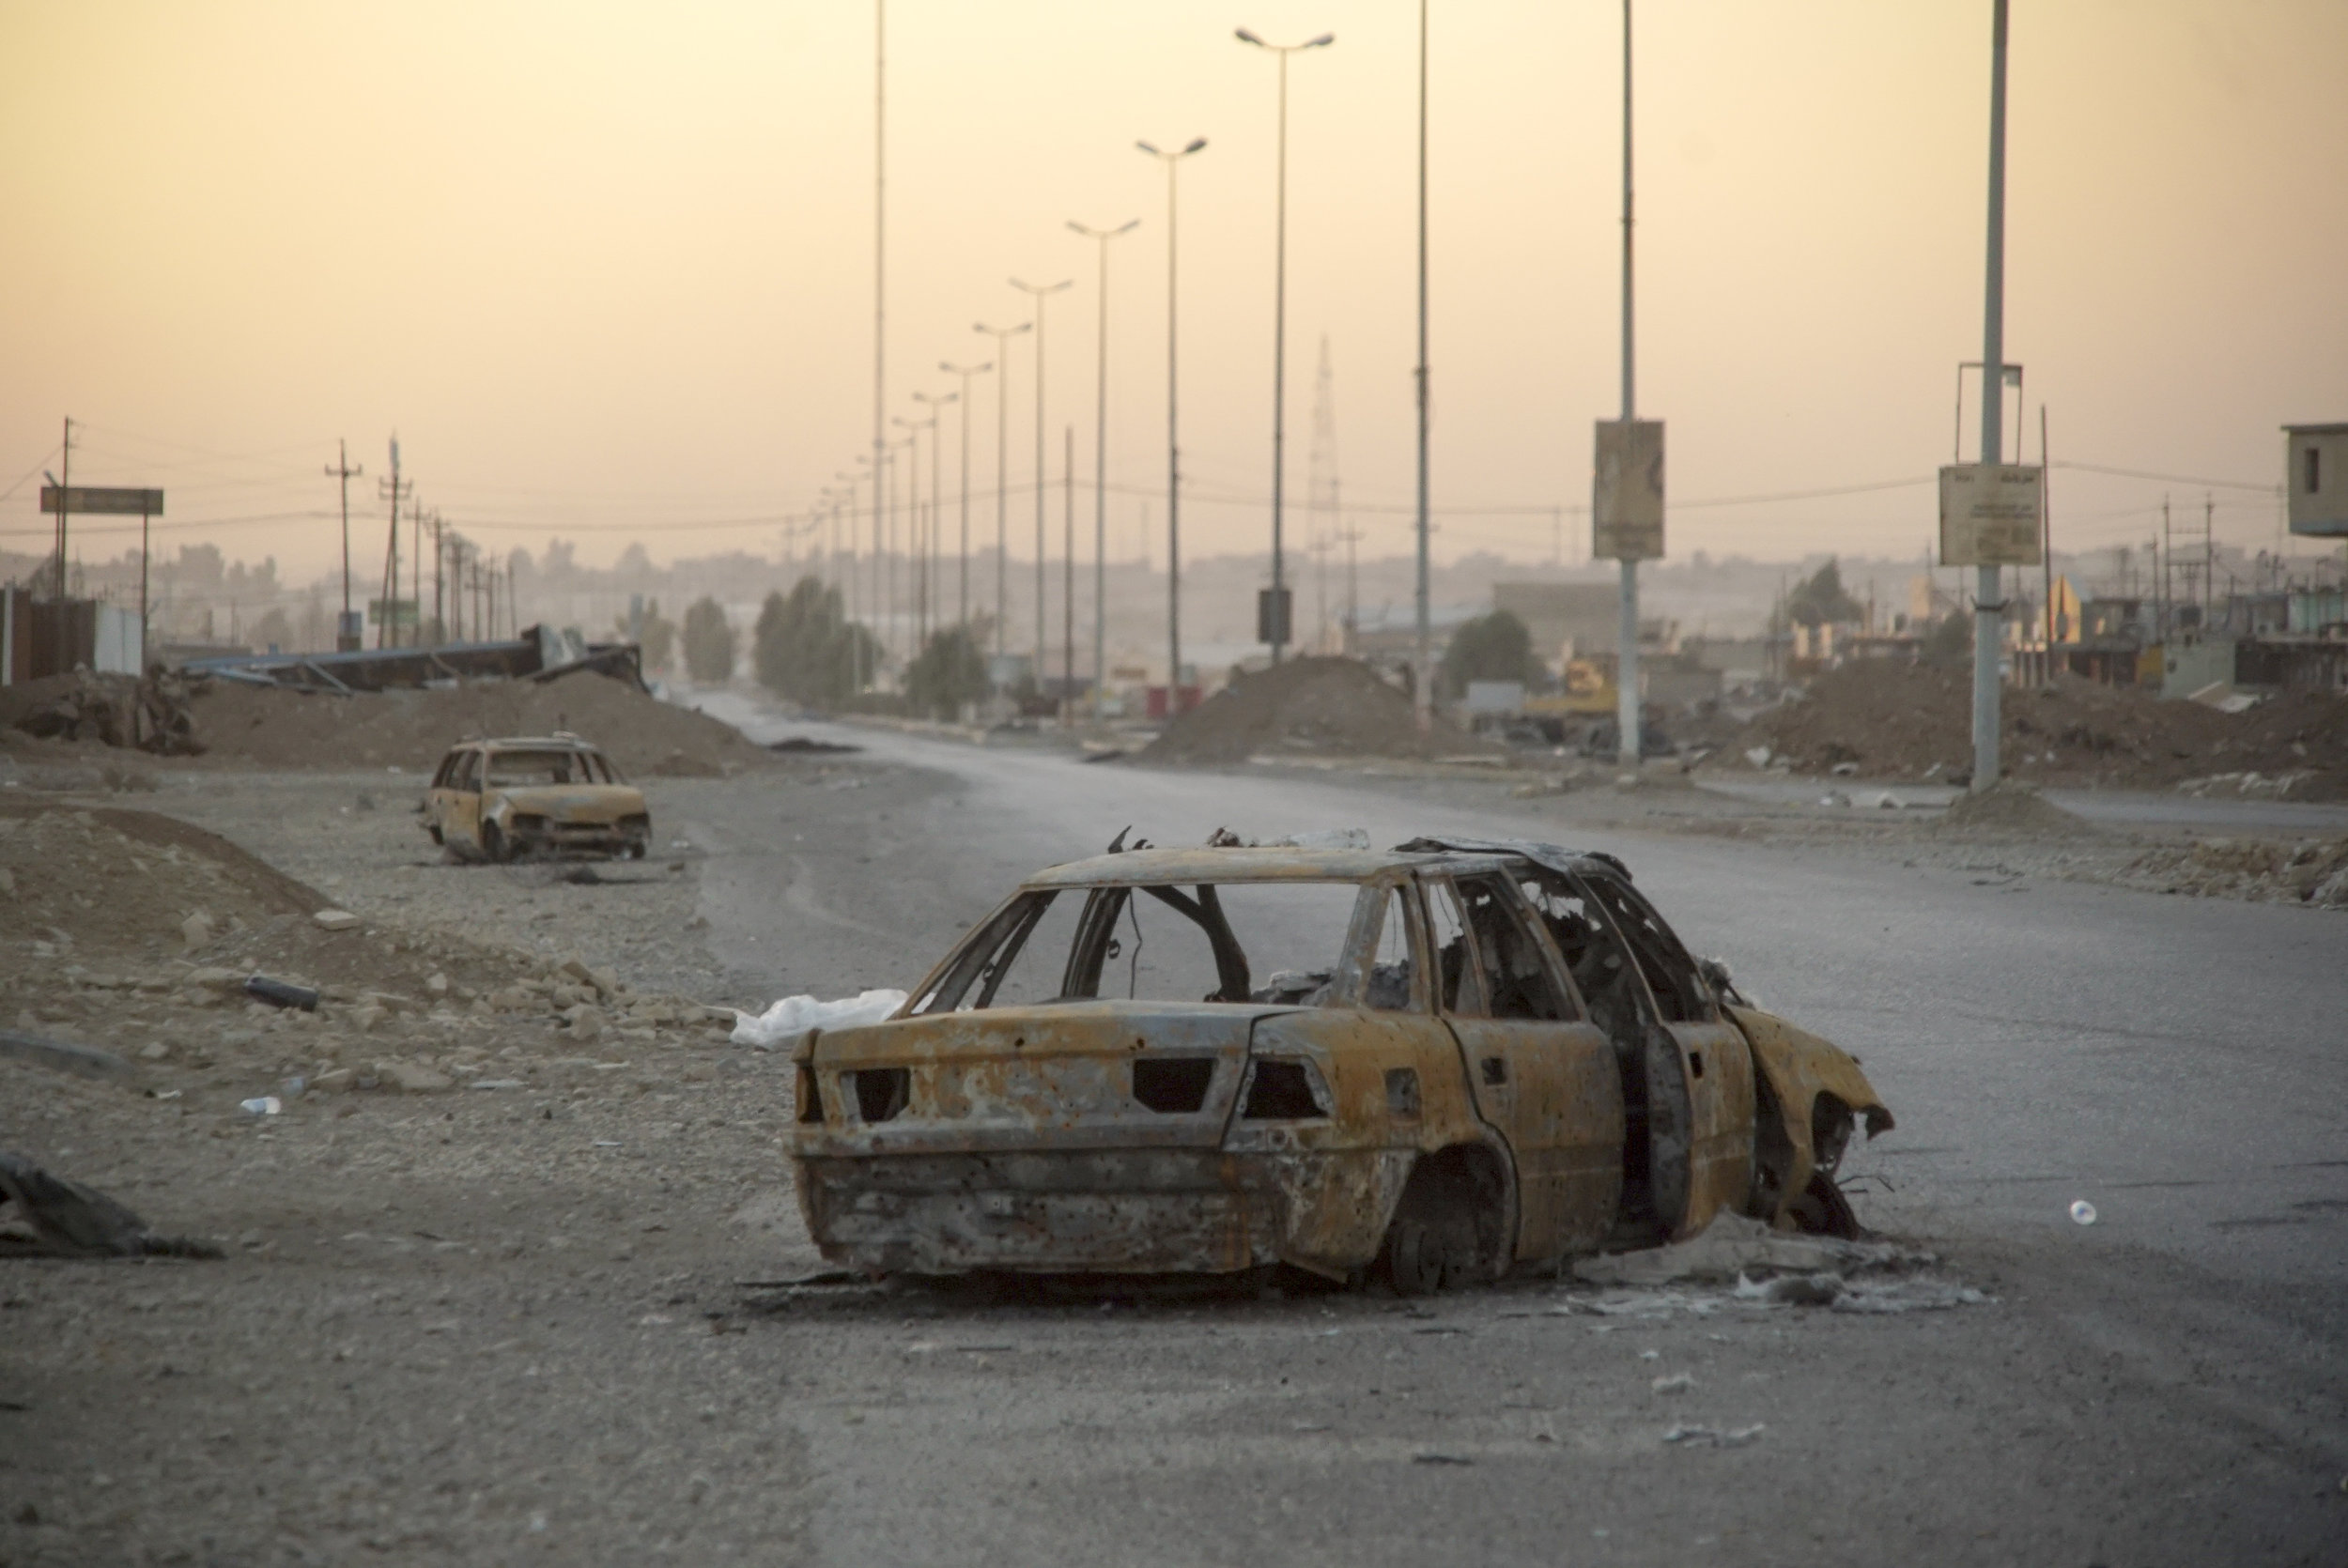 Outskirts of Mosul. Imagine your town or city being reduced to this.